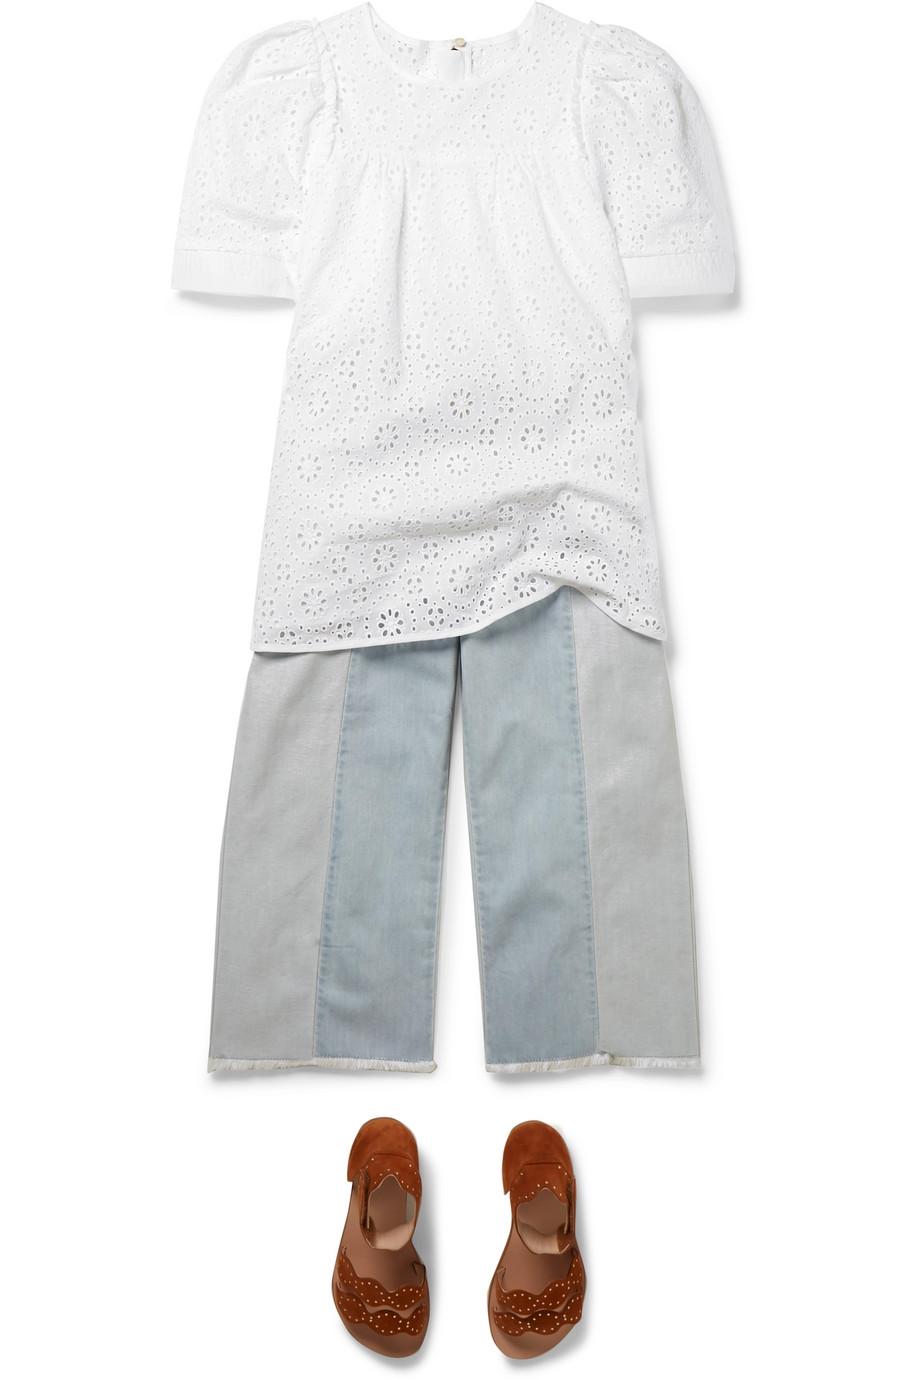 Chloé Kids Ages 6 - 12 broderie anglaise cotton top